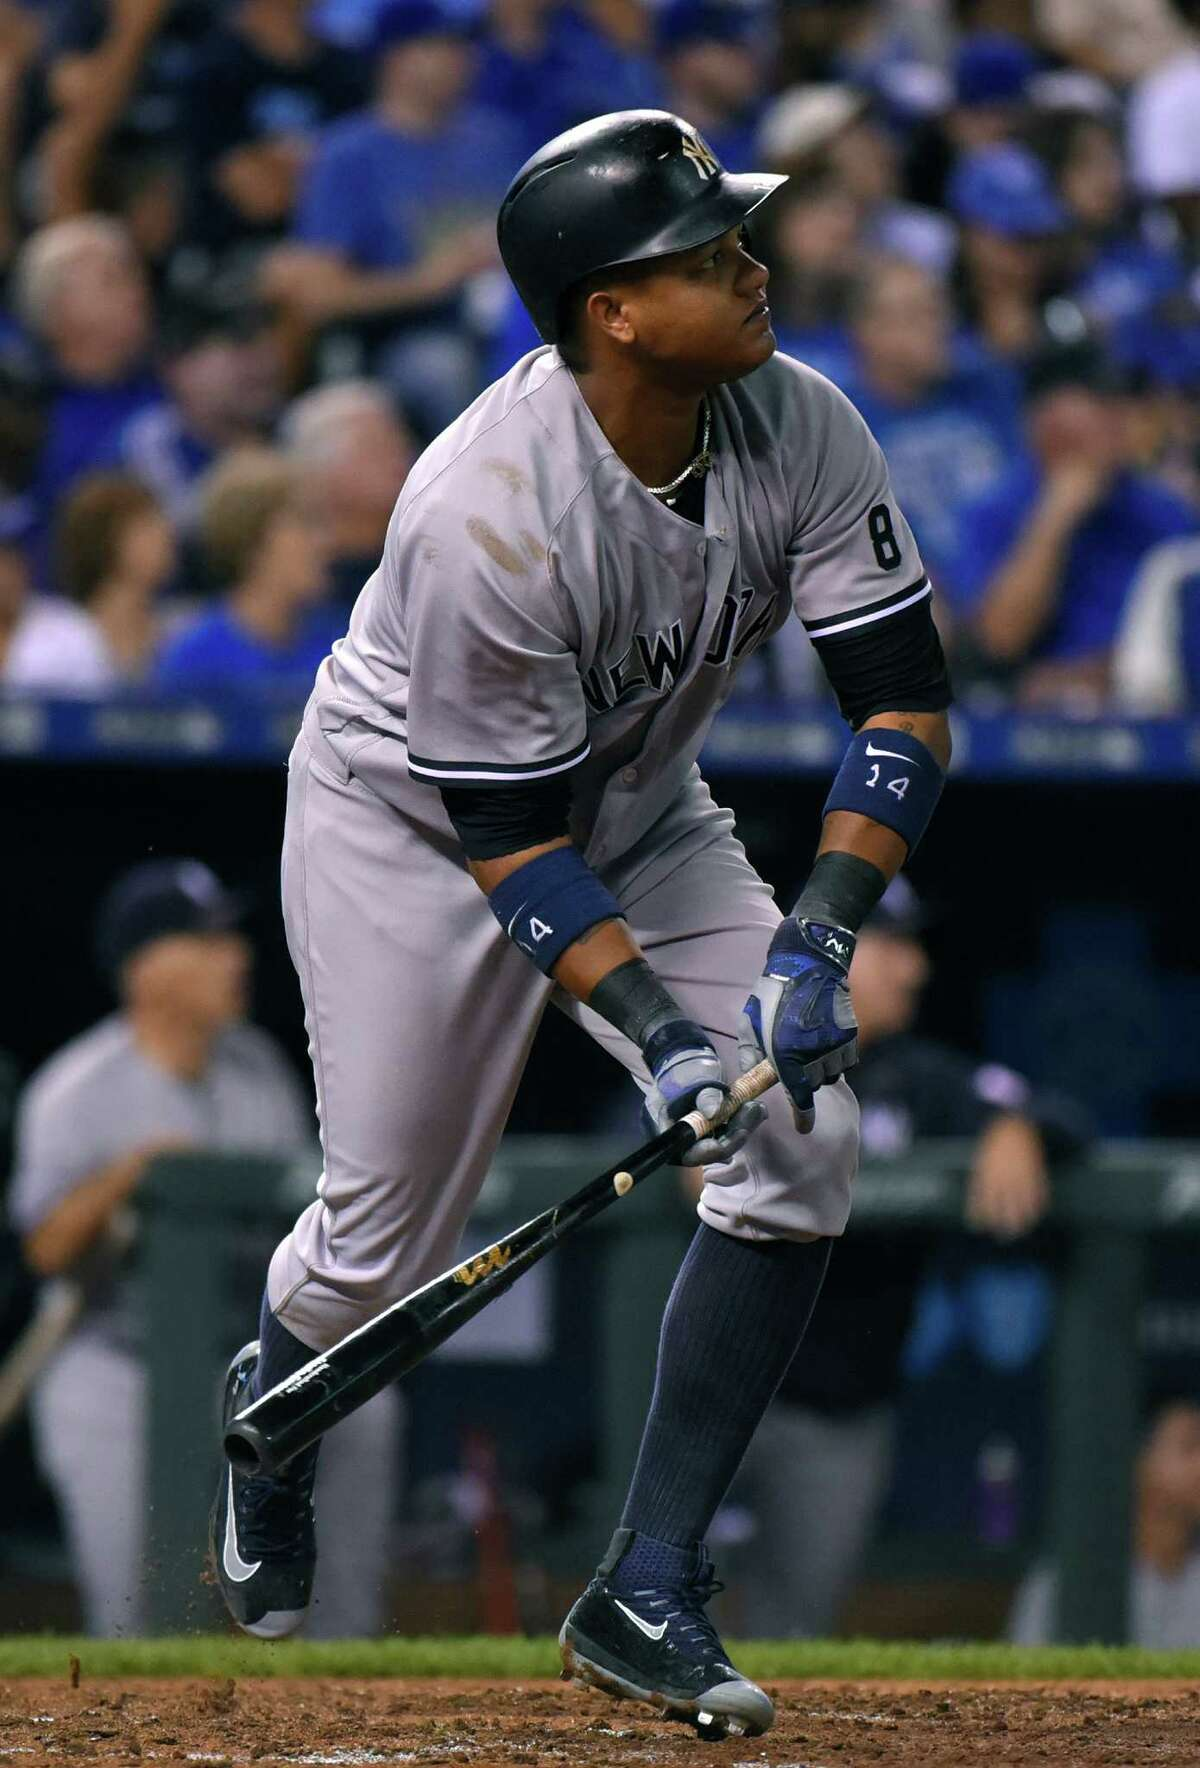 KANSAS CITY, MO - AUGUST 31: Starlin Castro #14 of the New York Yankees hits a two-run home run in the sixth inning against the Kansas City Royals at Kauffman Stadium on August 31, 2016 in Kansas City, Missouri. (Photo by Ed Zurga/Getty Images) ORG XMIT: 607684387